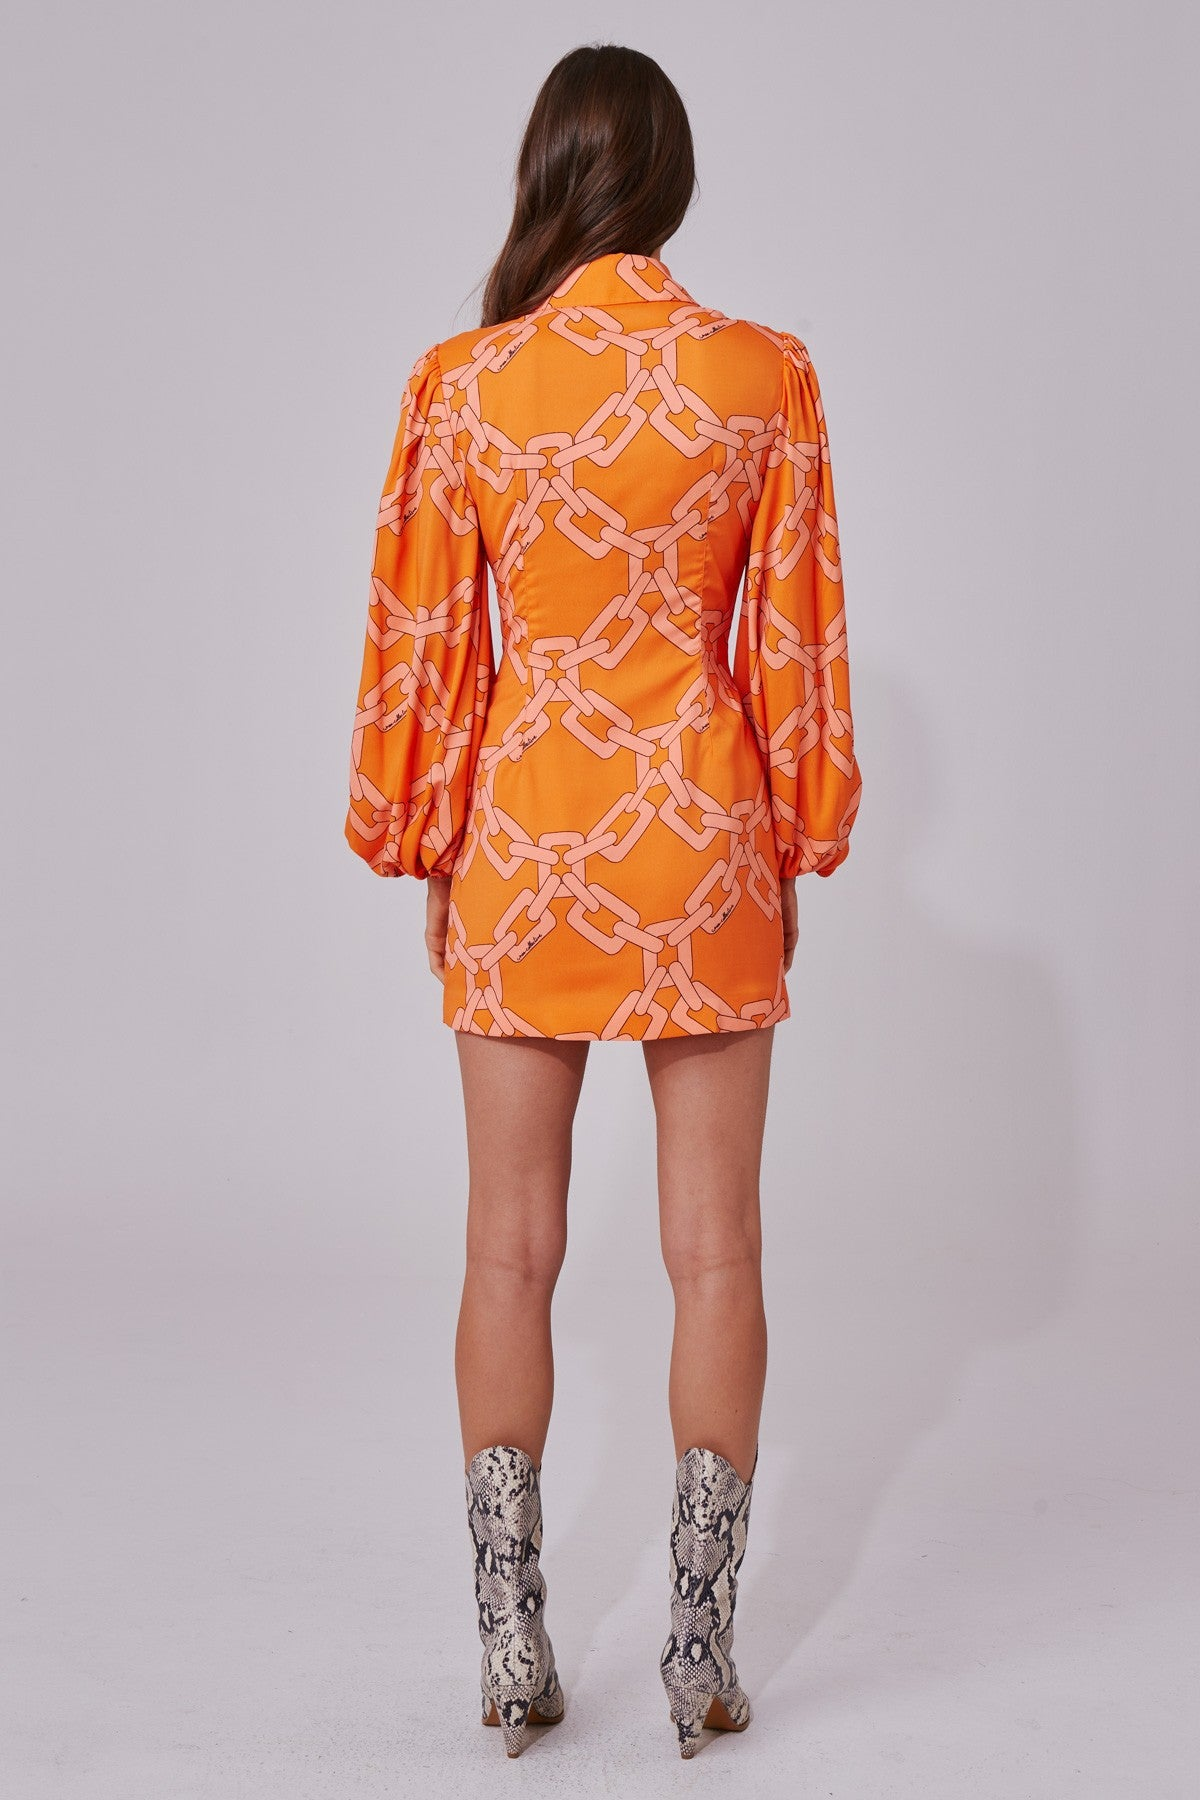 MORNINGS LONG SLEEVE DRESS tangerine chain